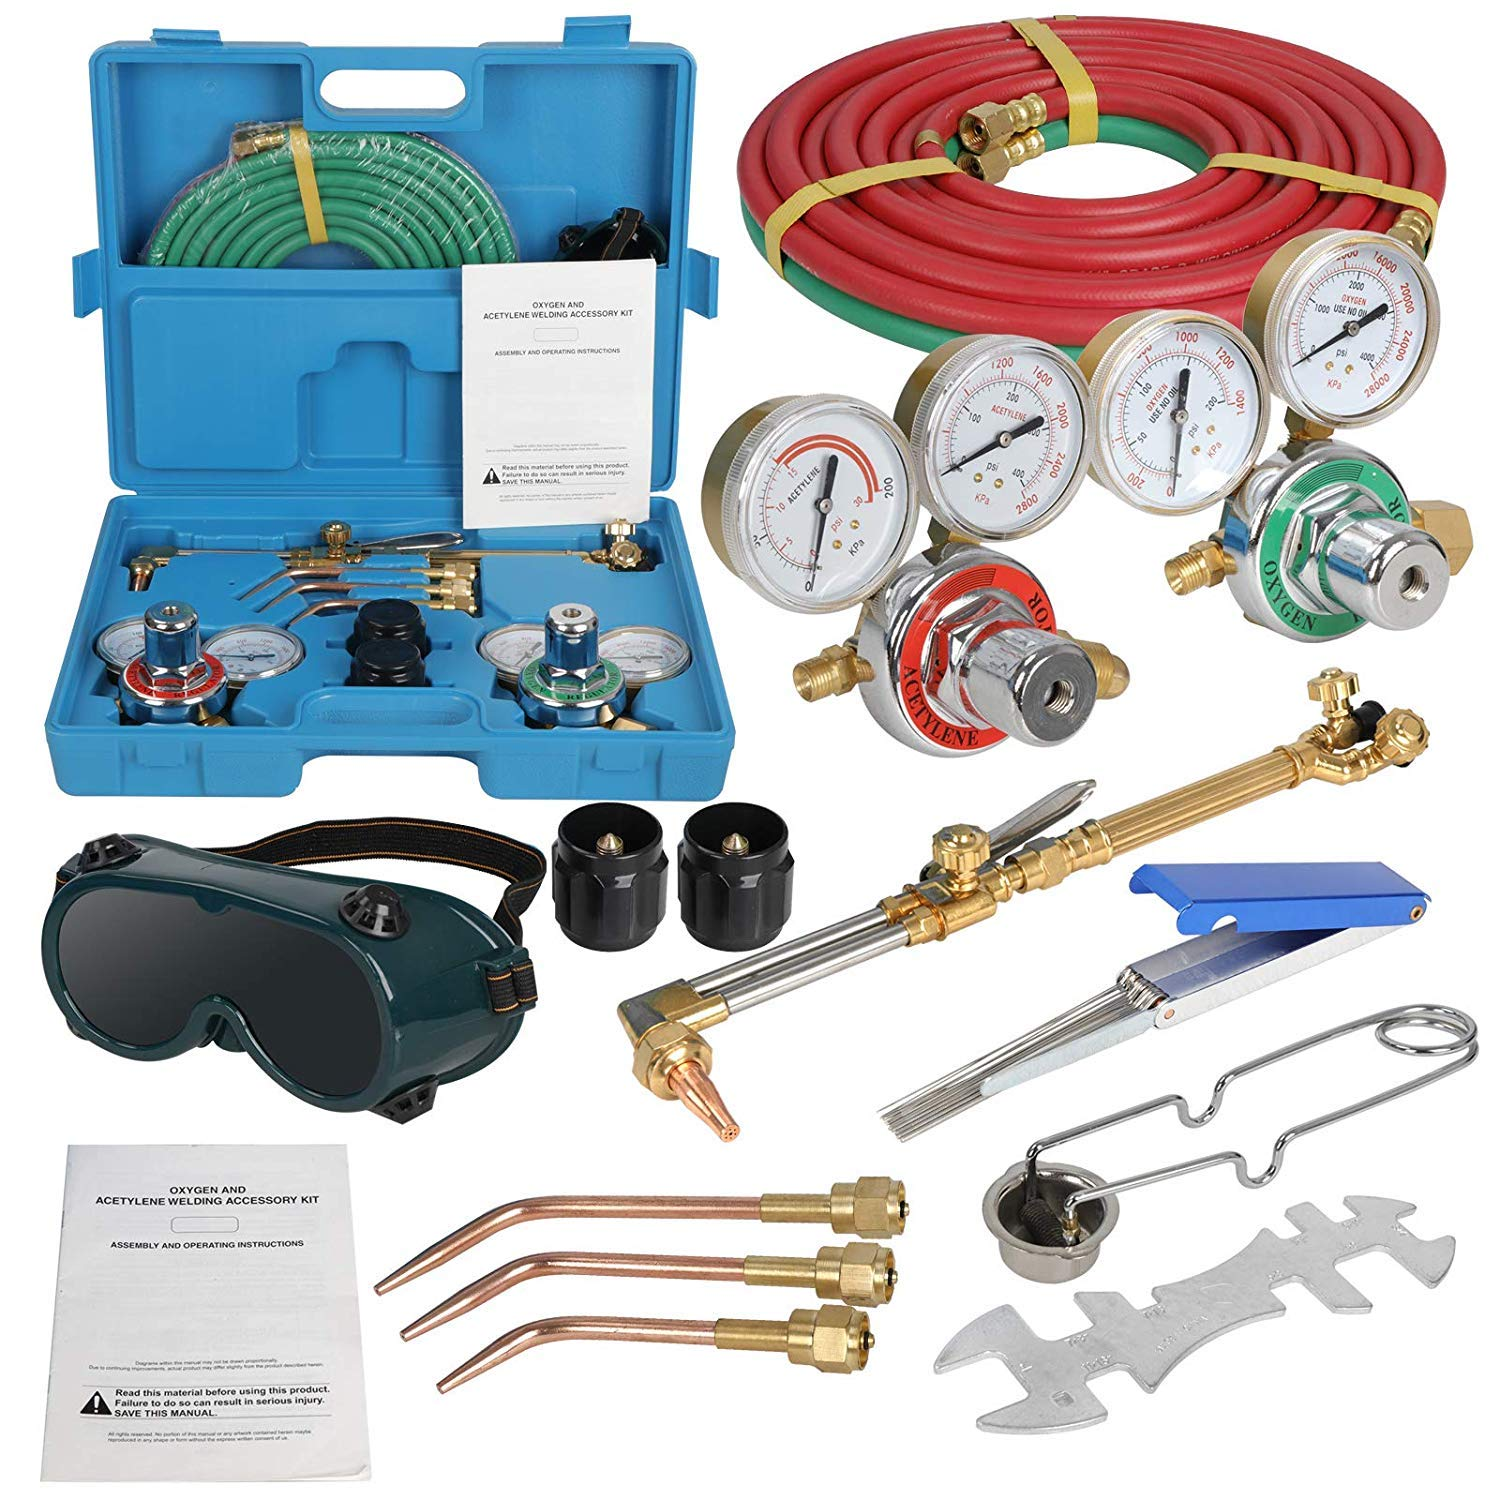 ZENSTYLE Oxygen & Acetylene Gas Cutting Torch and Welding Kit Portable Oxy Brazing Welder Tool Set with Two Hose,Goggles,Regulator Gauges,Storage Case by ZenStyle